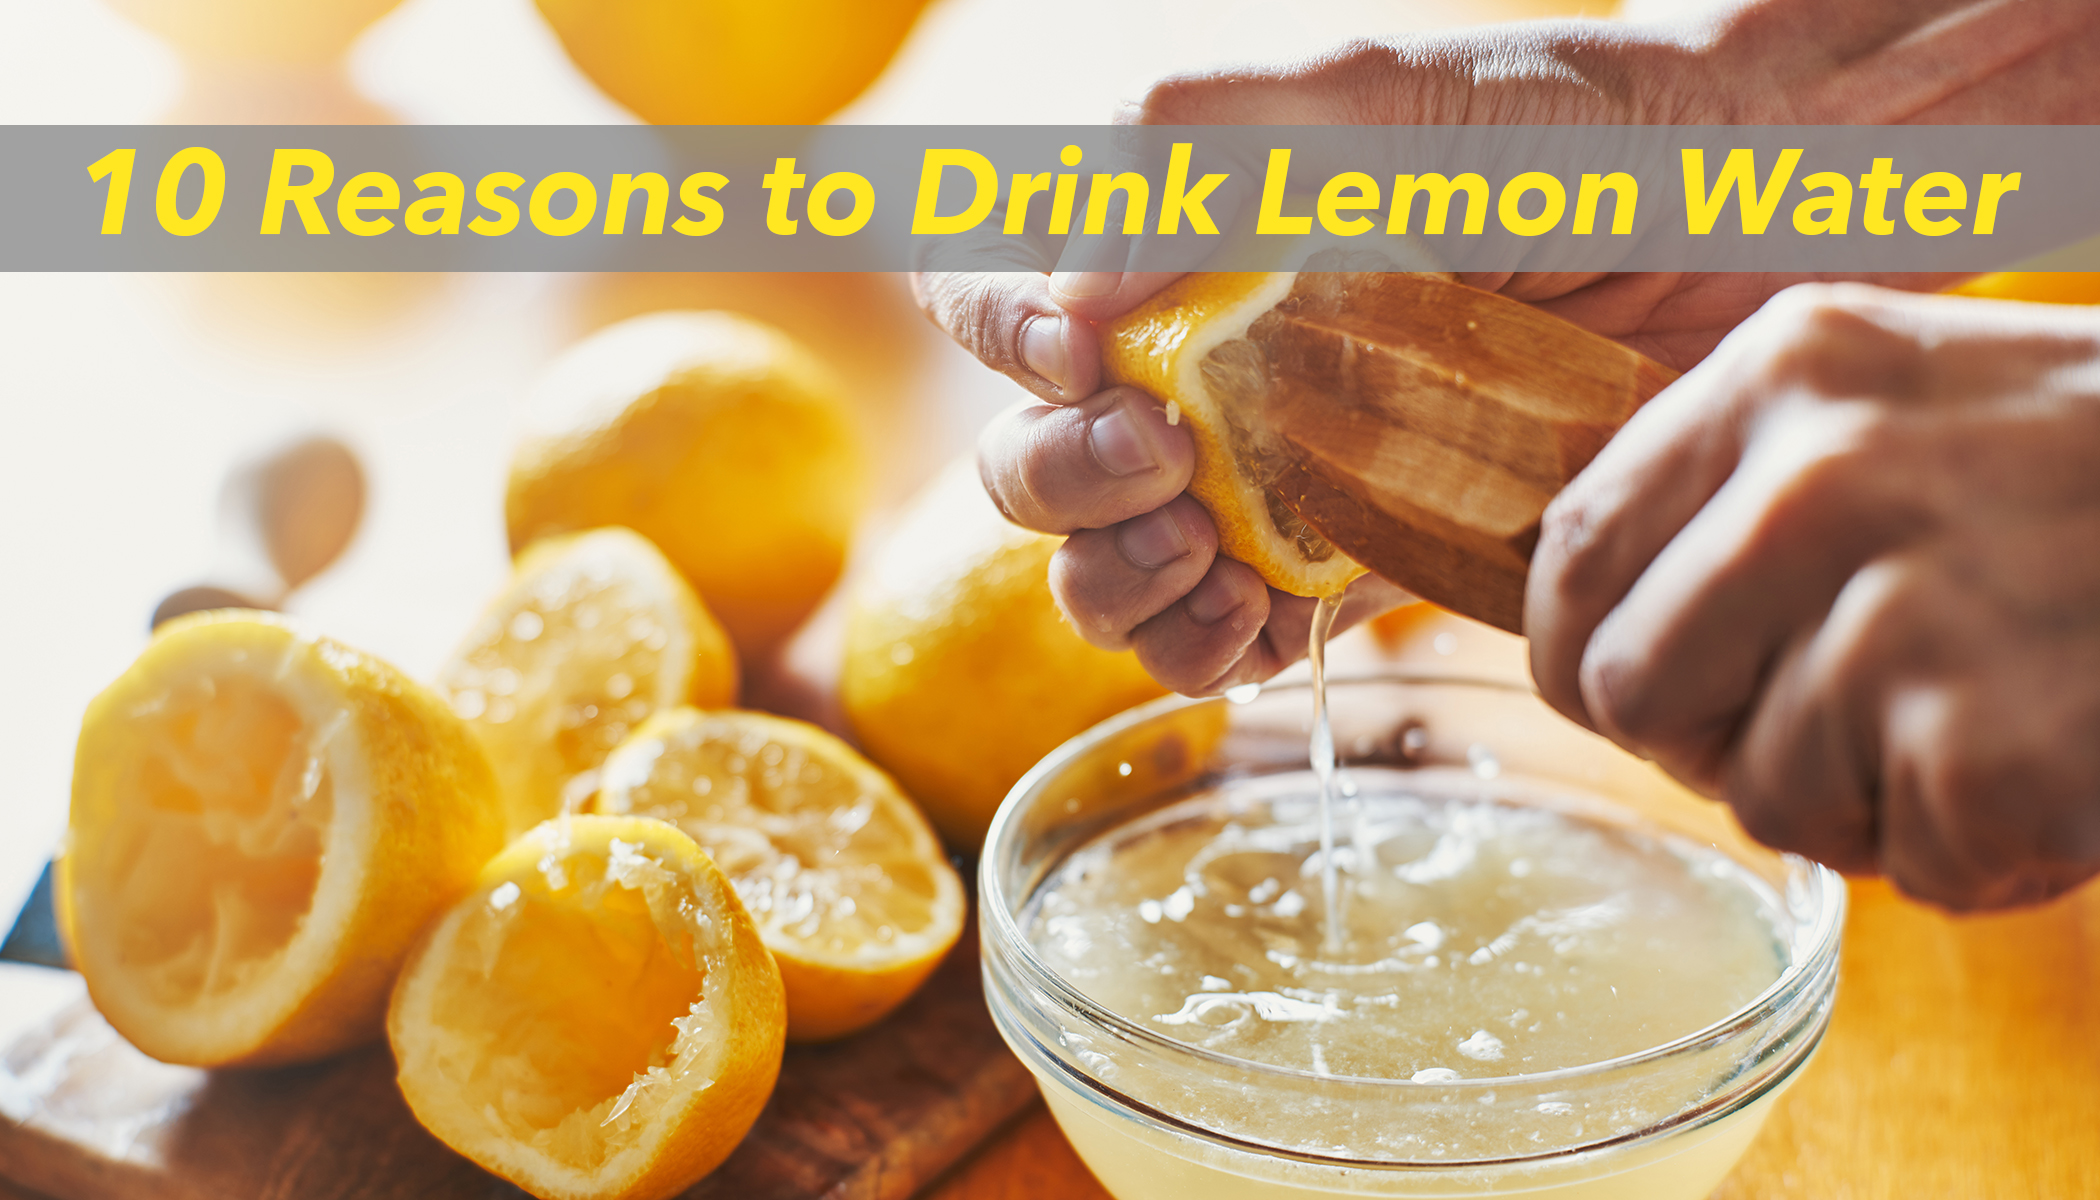 10 Health Benefits of Drinking Lemon Water Every Day